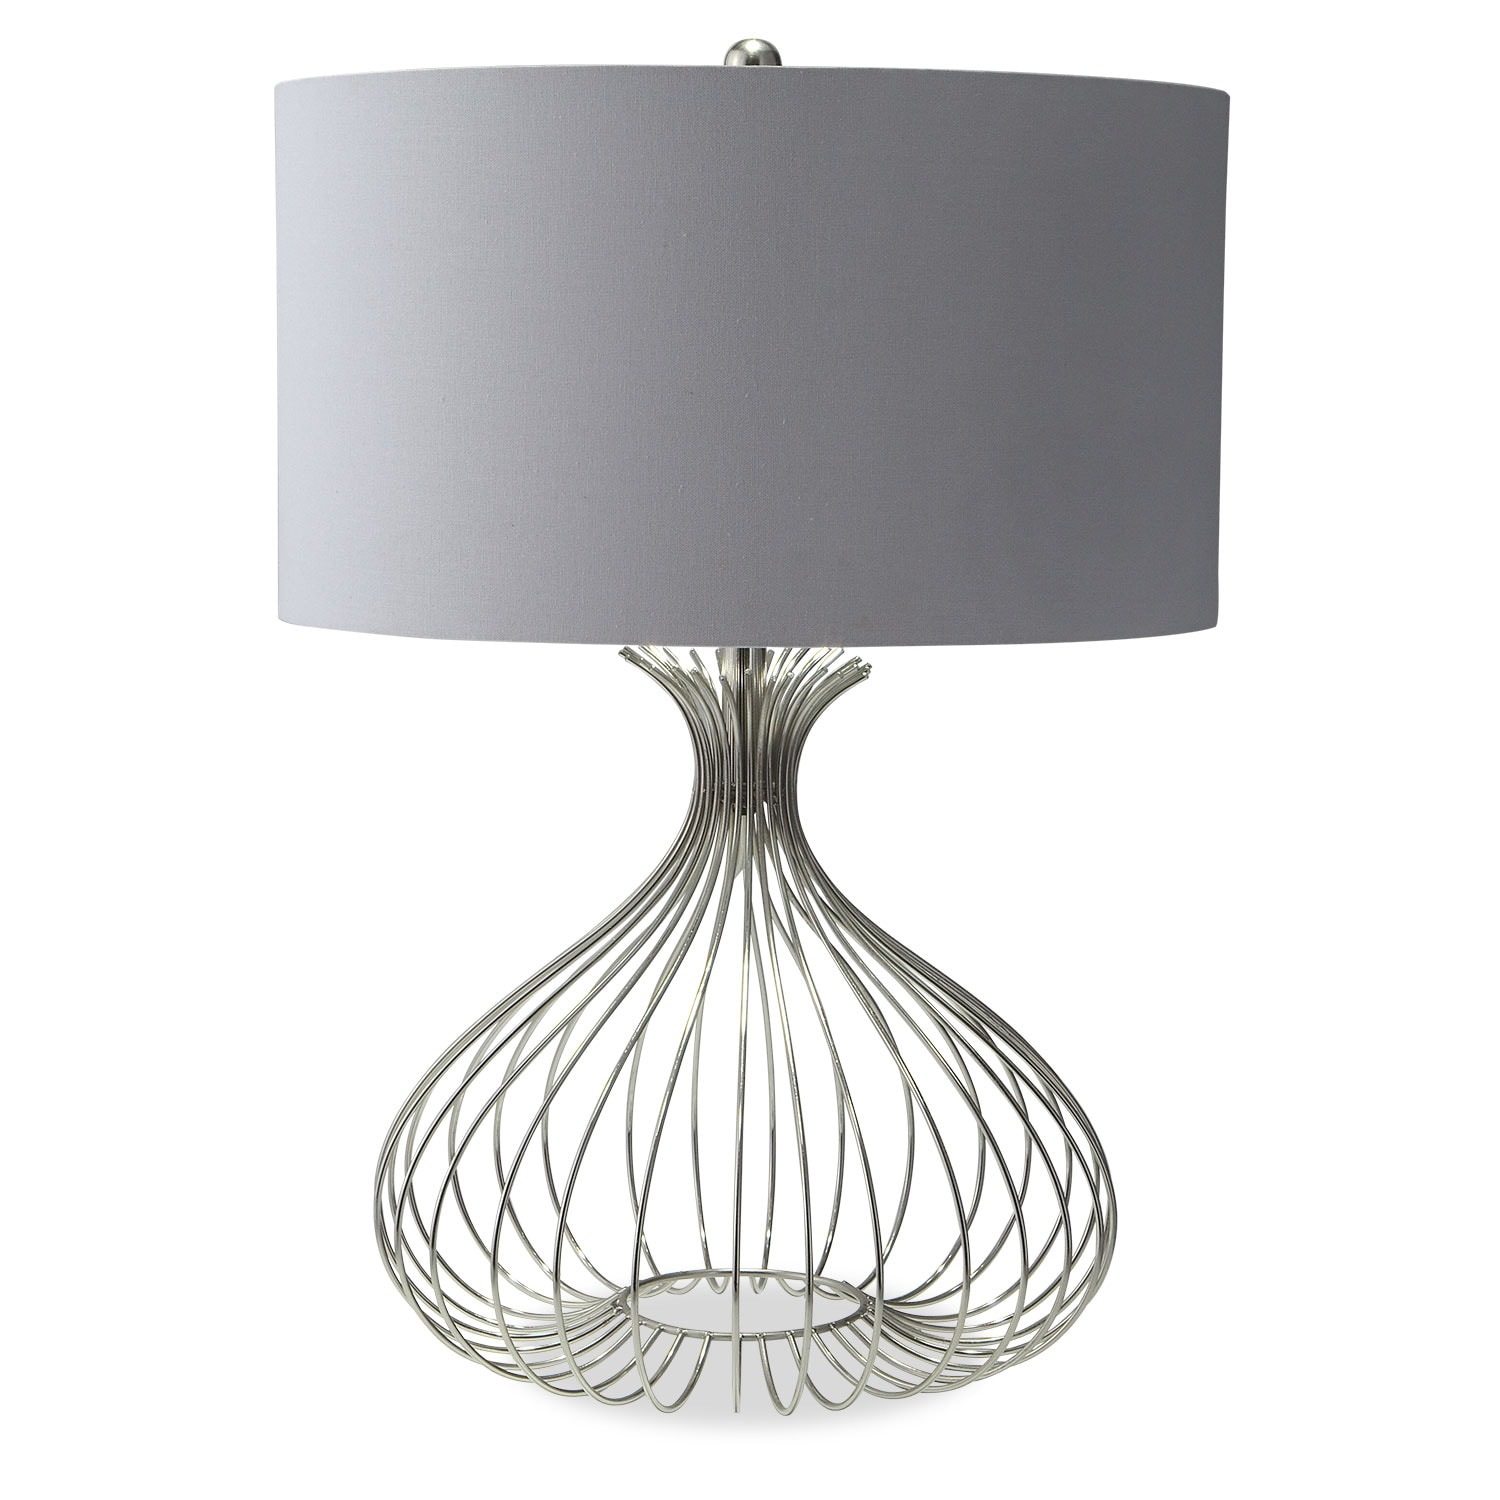 Nickel wire table lamp american signature furniture home accessories nickel wire table lamp greentooth Image collections